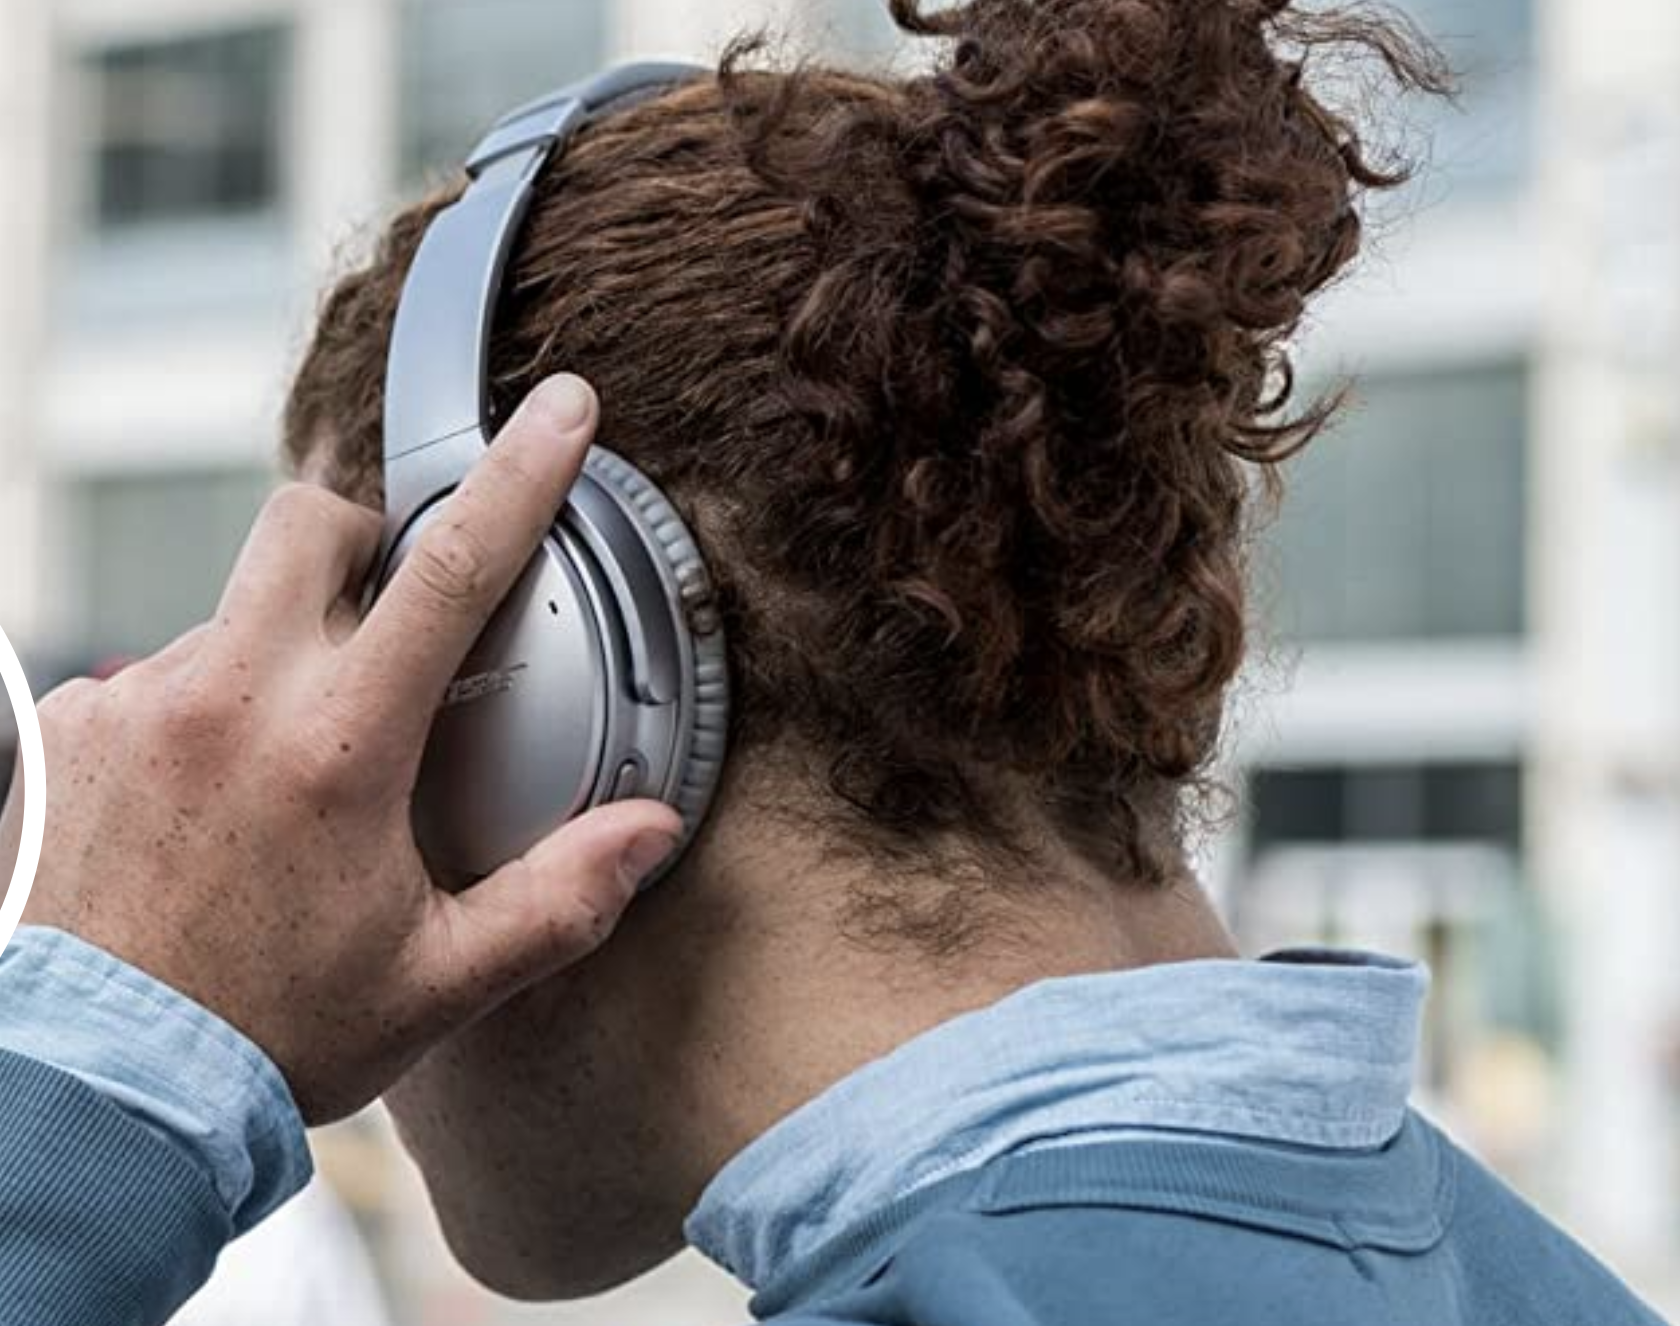 A model wearing a pair of gray over the ear wireless headphones